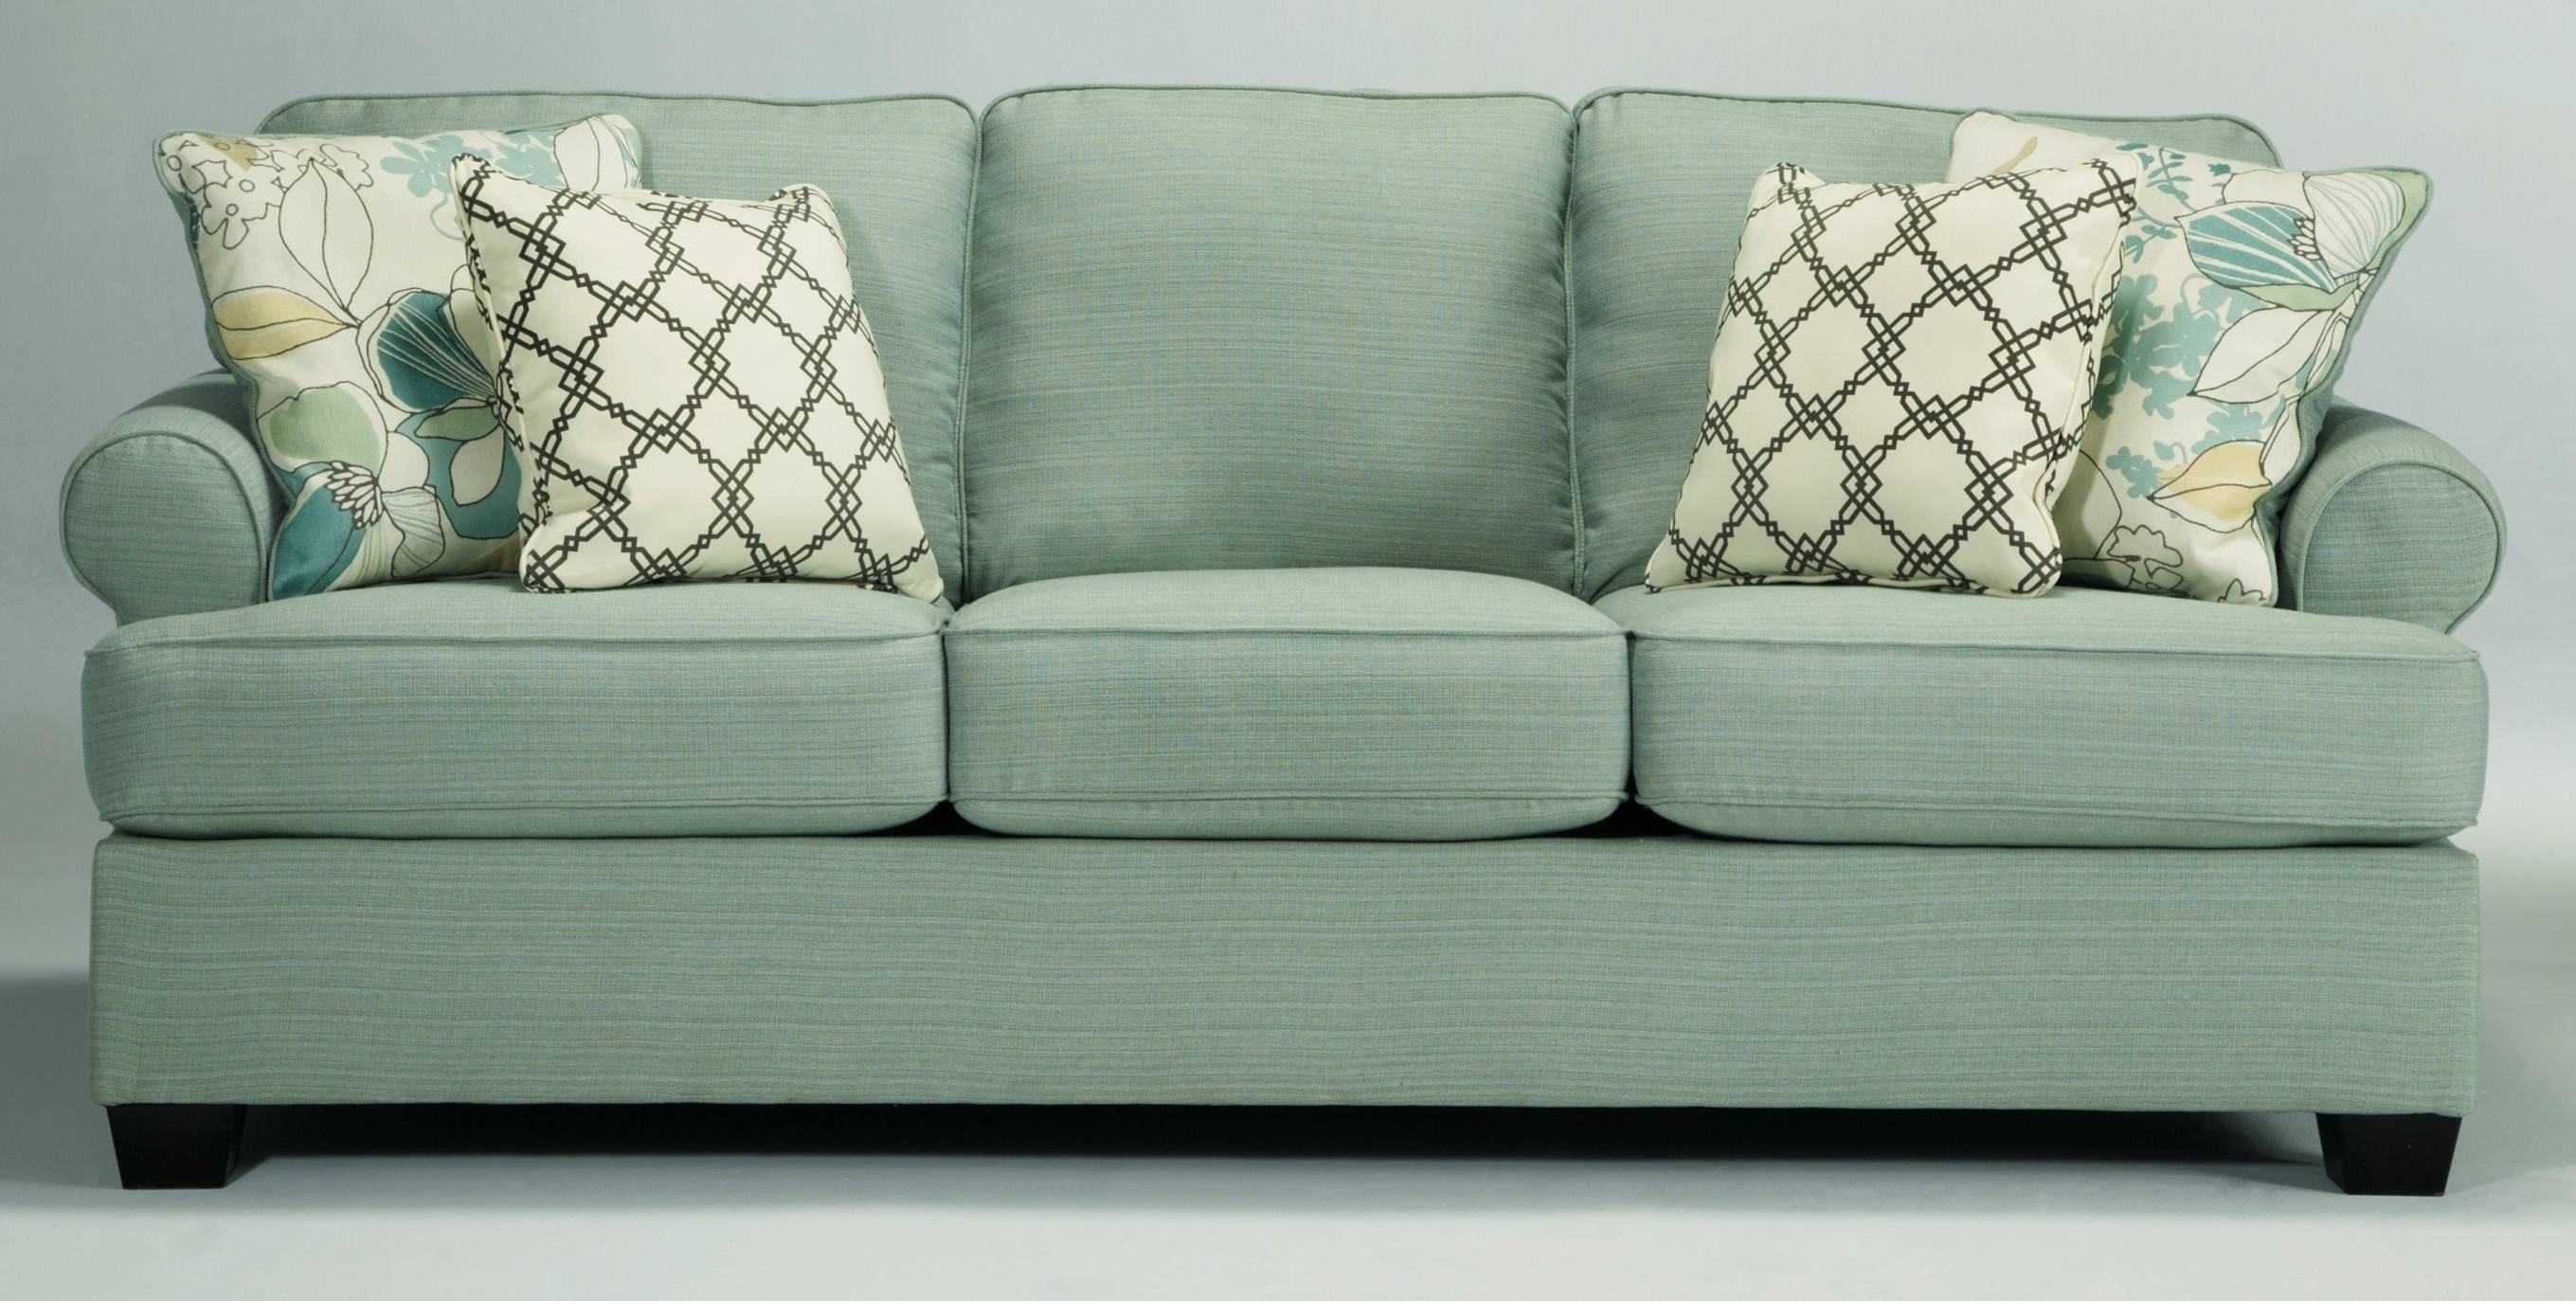 Buy Ashley Furniture 2820038 Daystar Seafoam Sofa inside Seafoam Sofas (Image 2 of 15)